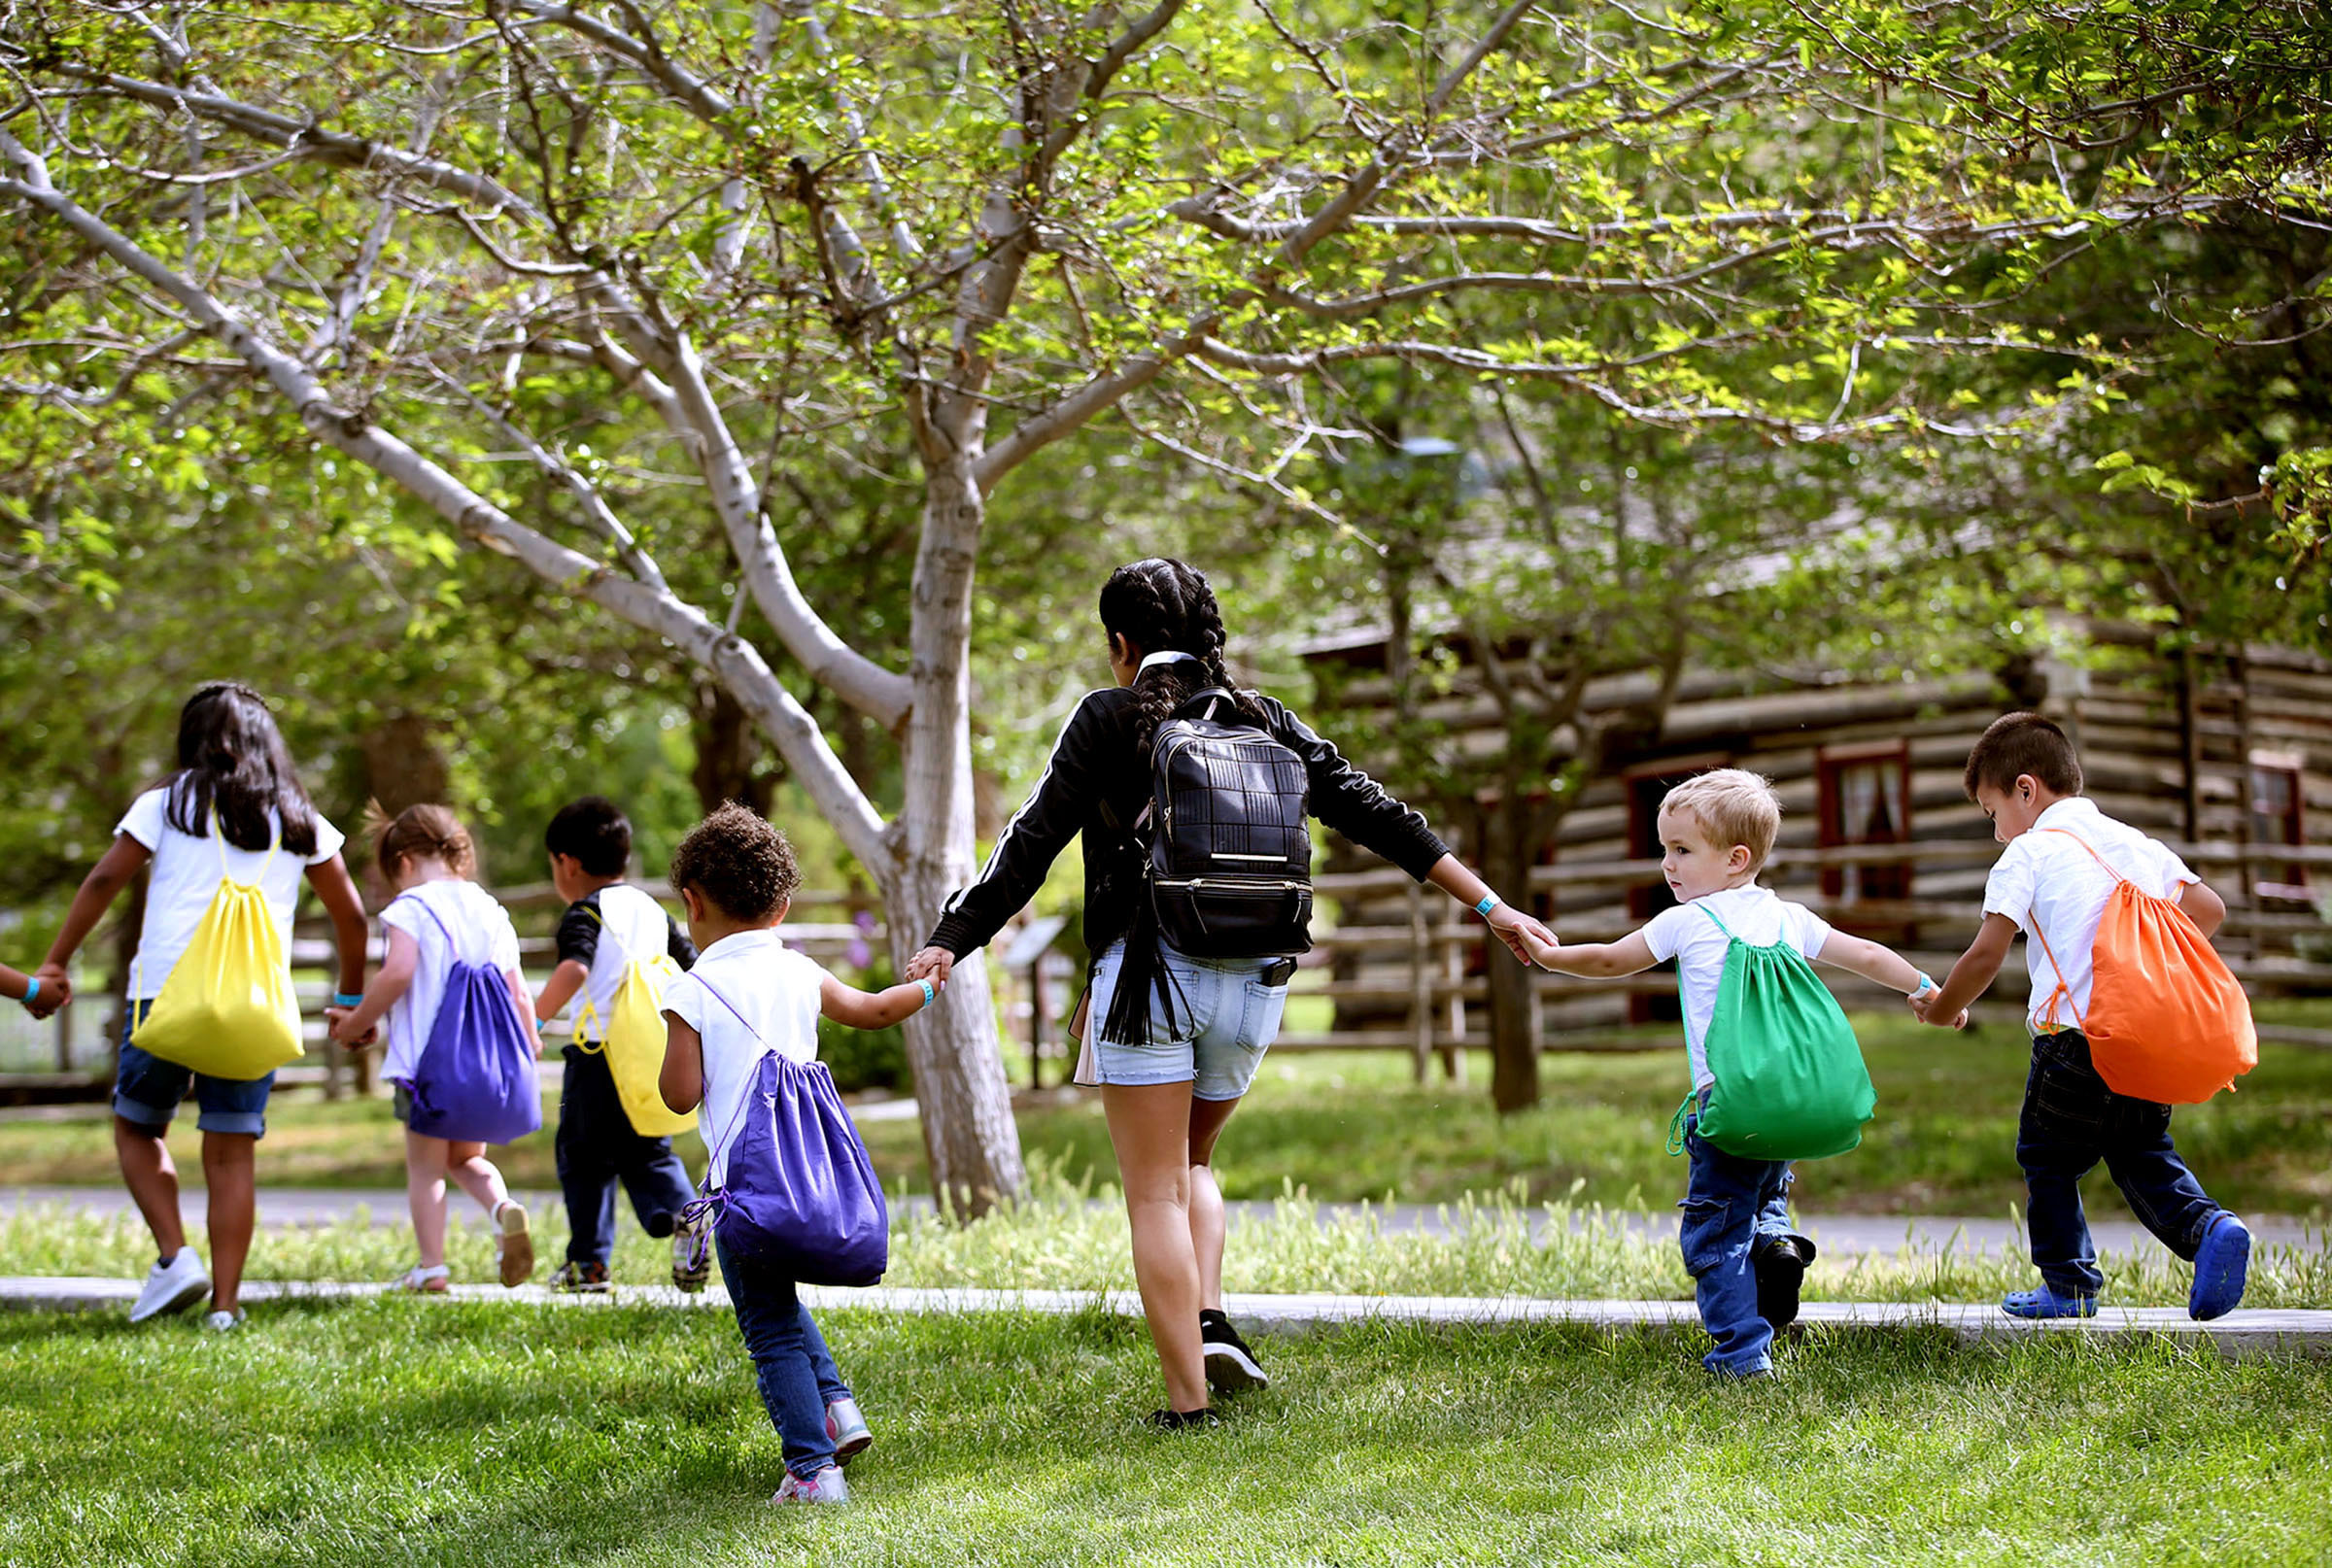 Children's Service Society of Utah hosts Provider Appreciation Day at This is the Place State Park in Salt Lake City on Thursday, May 25, 2017. There are potentially more than 152,000 young children who need daily care in Utah, yet the state has only 41,1